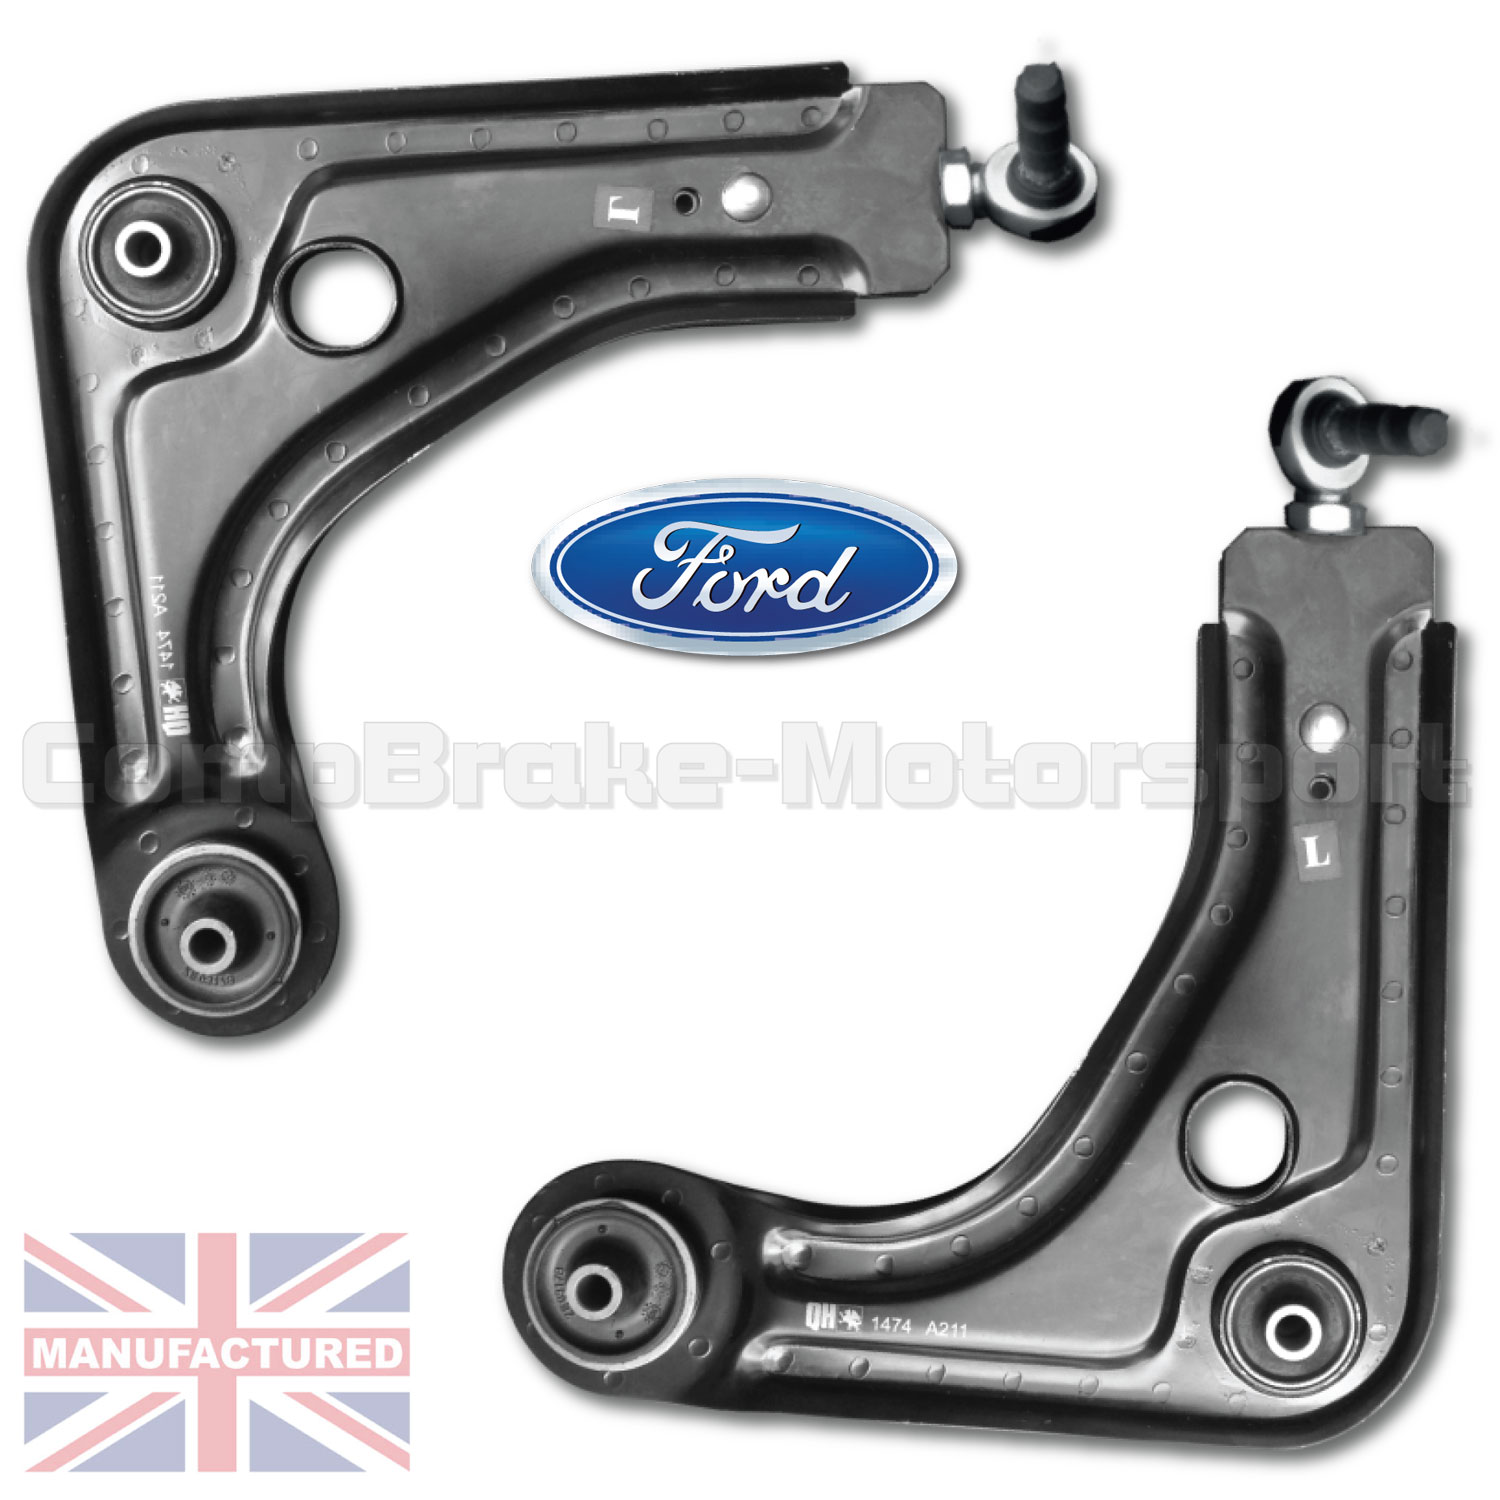 FOR RENAULT 5 GT TURBO NEW WISHBONE BOTTOM BALL JOINTS PAIR OE SPEC QUALITY